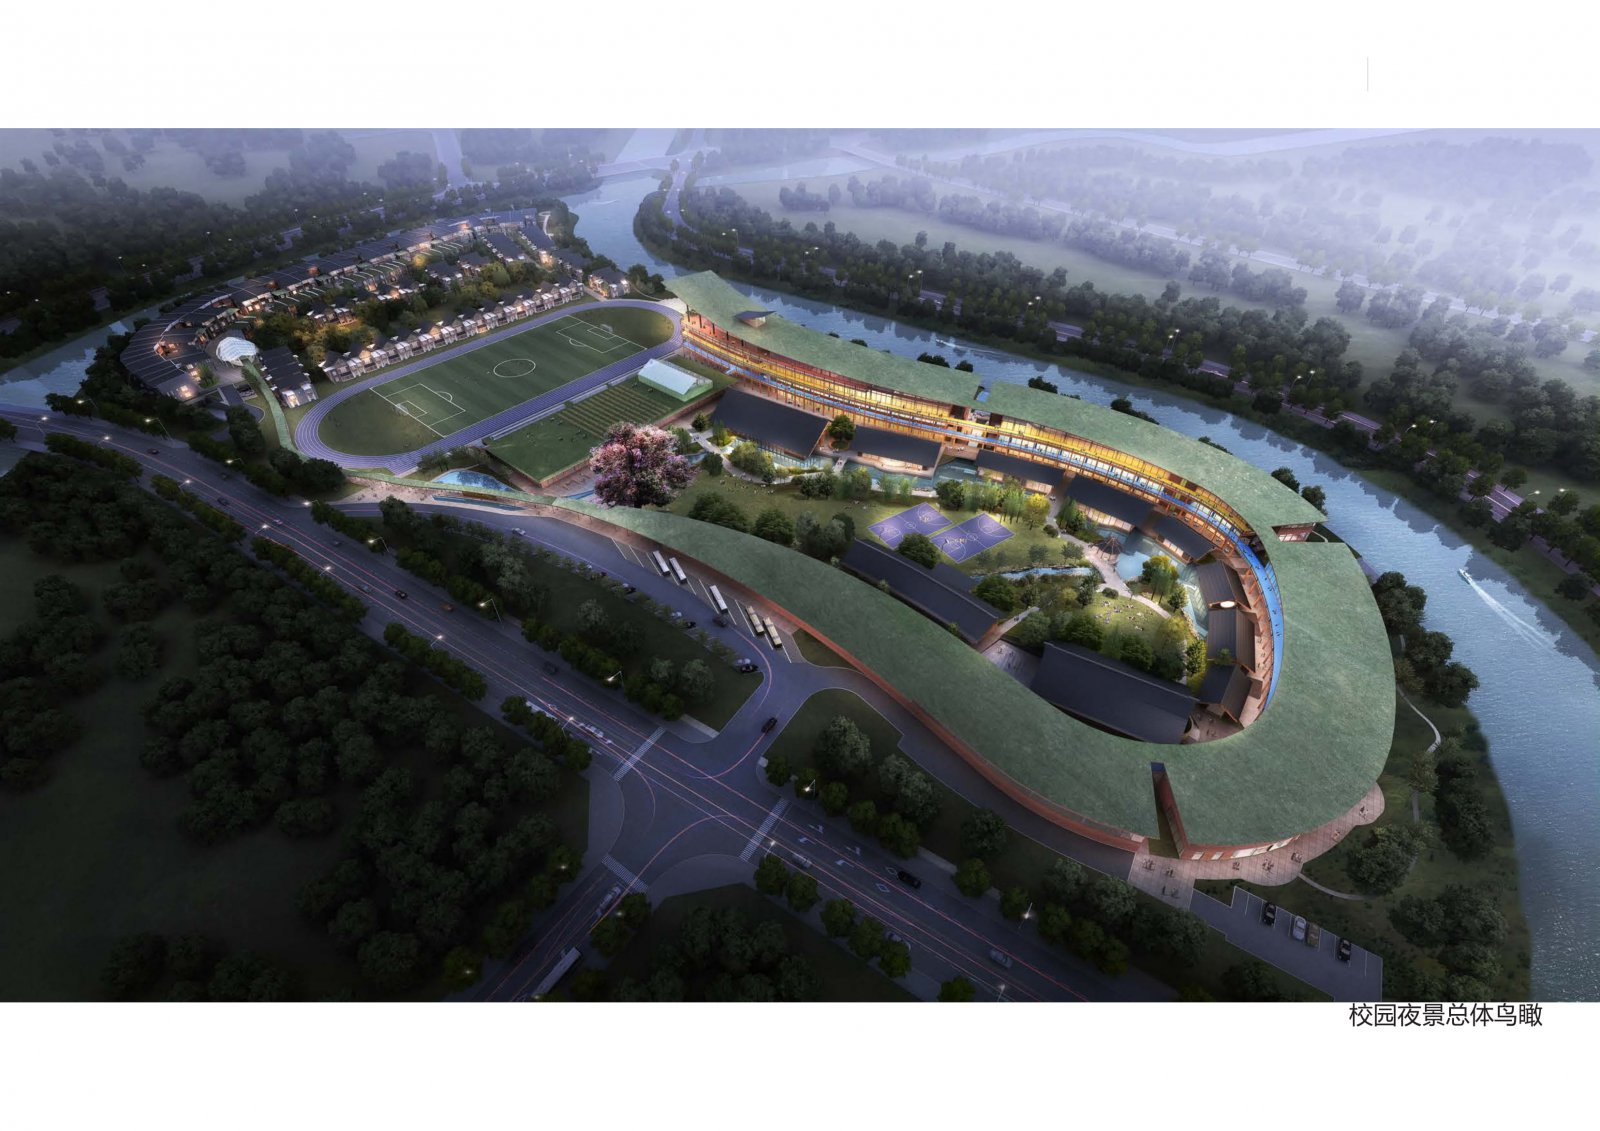 Xiang Lake Academy Design